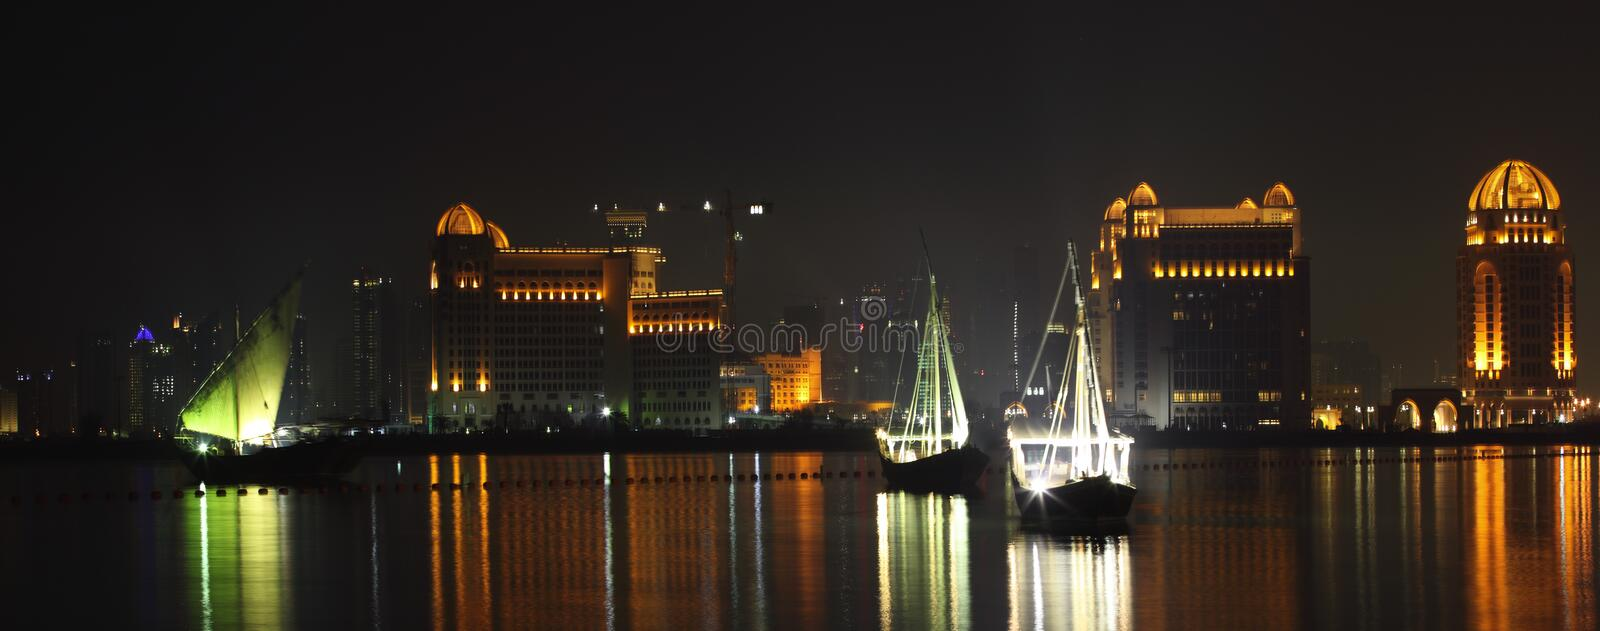 Dhows in baia ad ovest, Doha fotografie stock